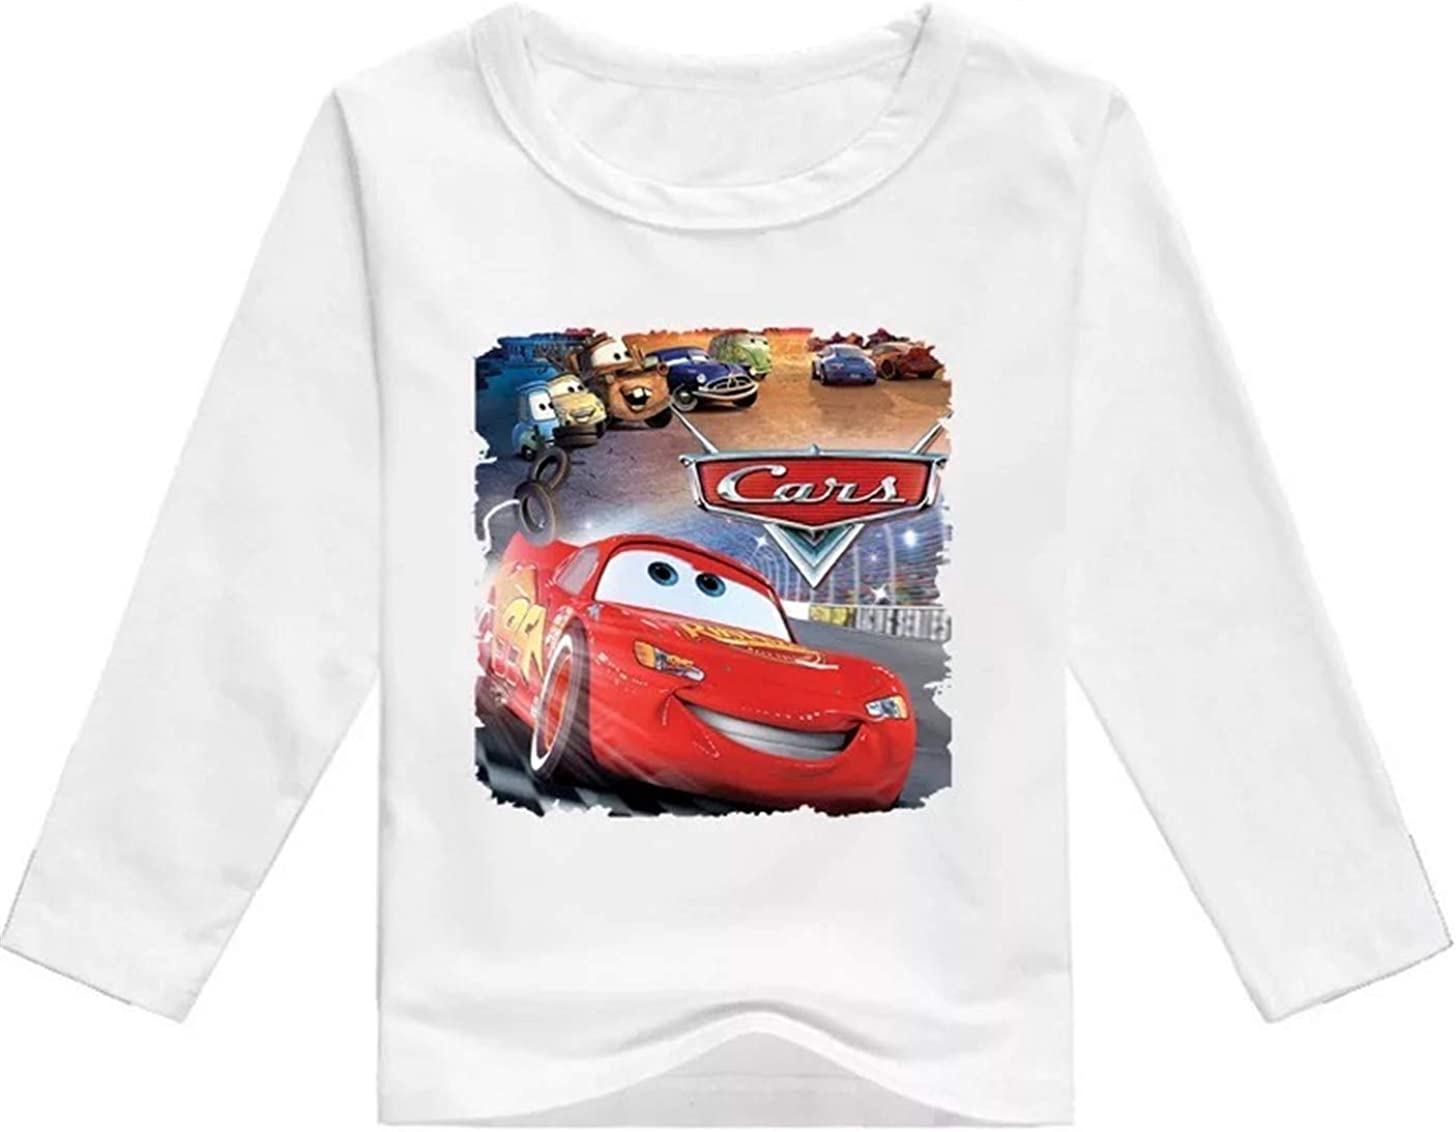 2T-12Y,12 Colors Zhuoma GoBen Little Boys McQueen Cars Long Sleeve T Shirts-Unisex Kids Crew Neck T-Shirts